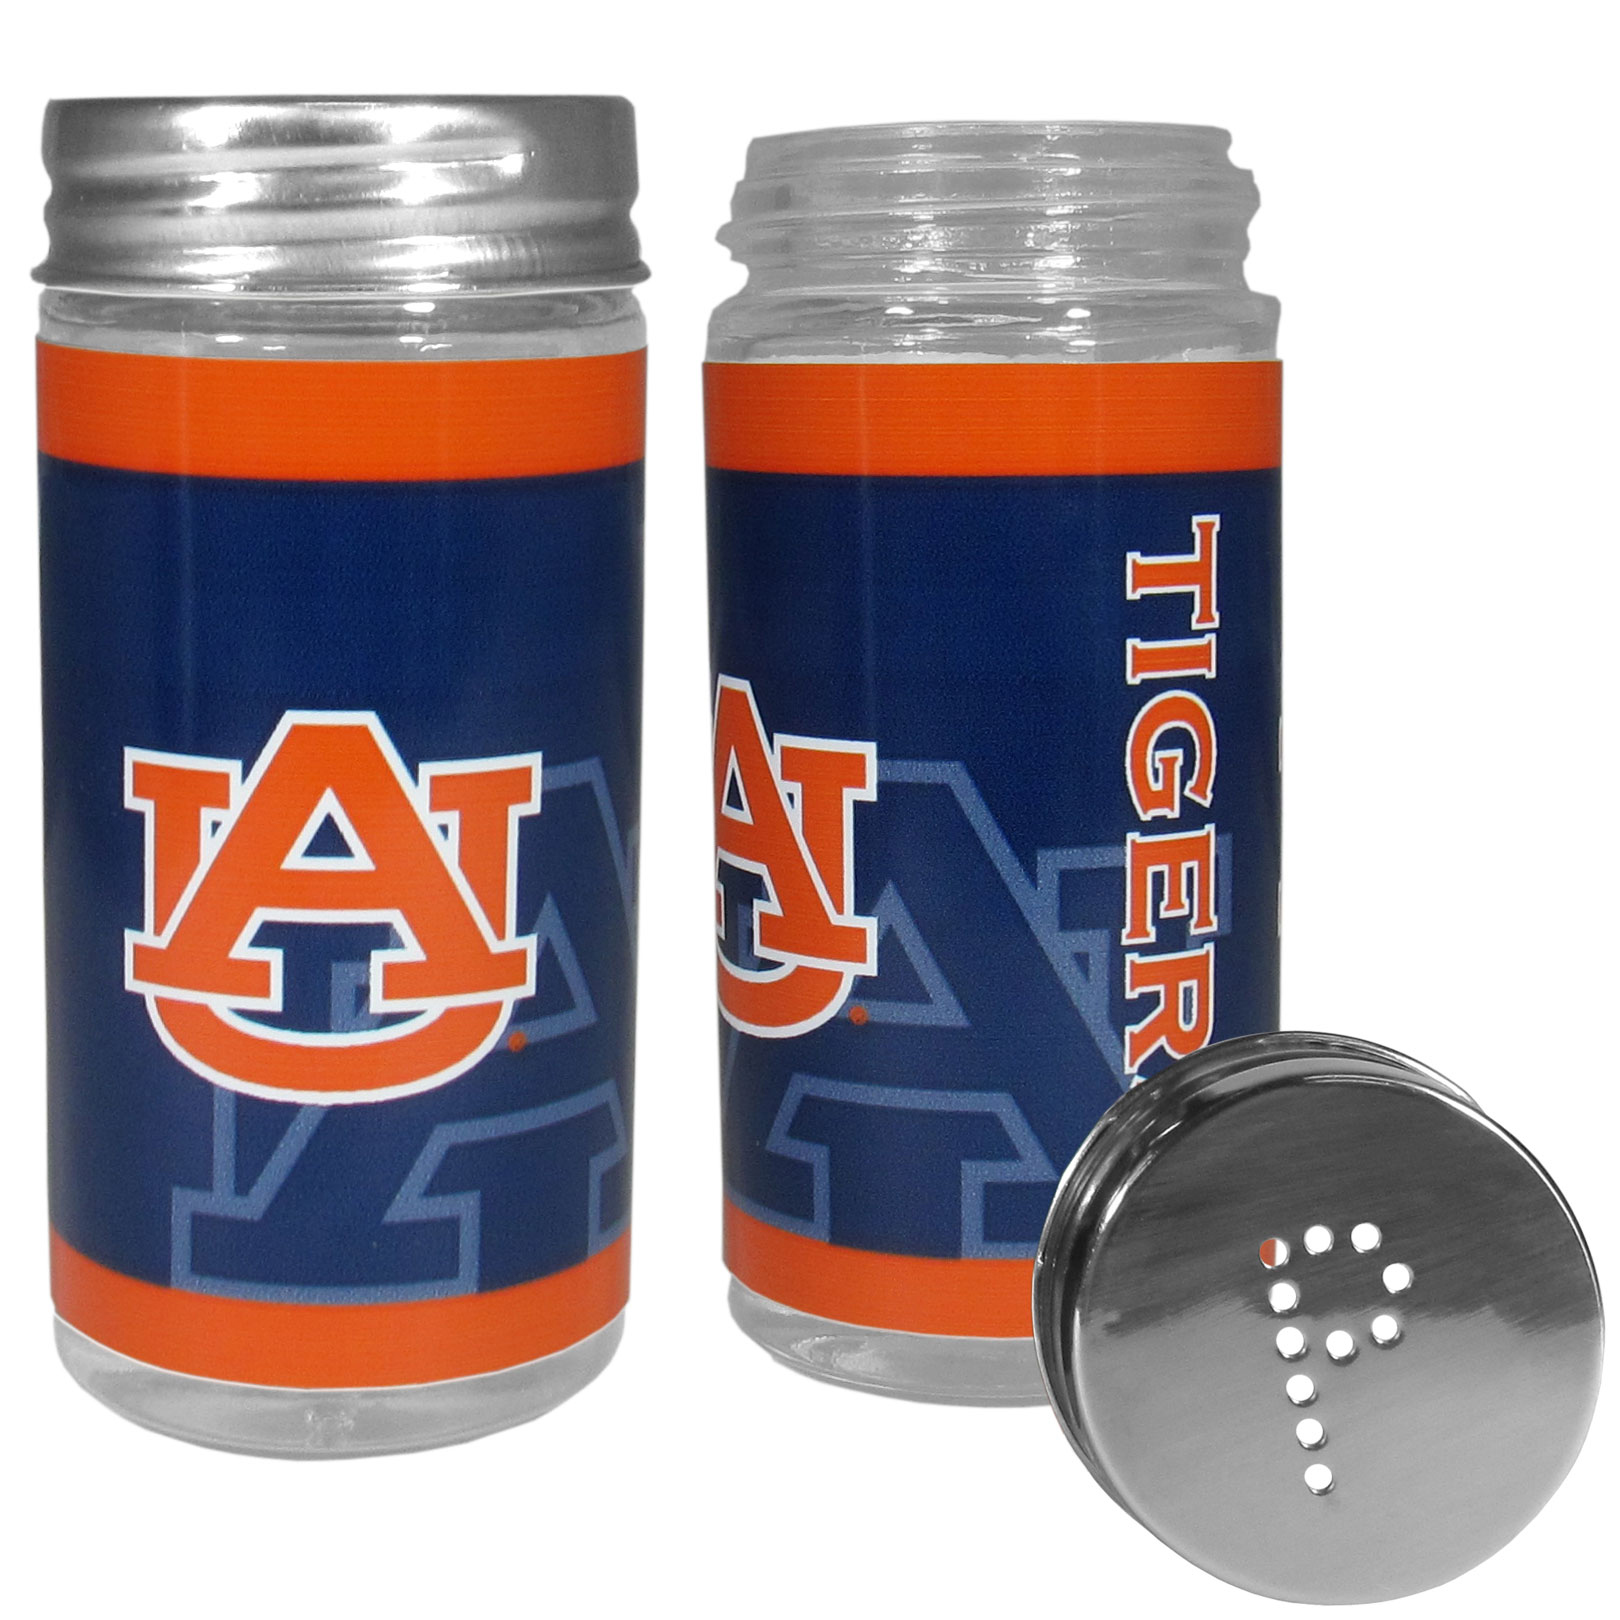 Auburn Tigers Tailgater Salt & Pepper Shakers - No tailgate party is complete without your Auburn Tigers salt & pepper shakers featuring bright team graphics. The glass shakers are 3.75 inches tall and the screw top lids have holes that spell out P and S. These team shakers are a great grill accessory whether you are barbecuing on the patio, picnicing or having a game day party.